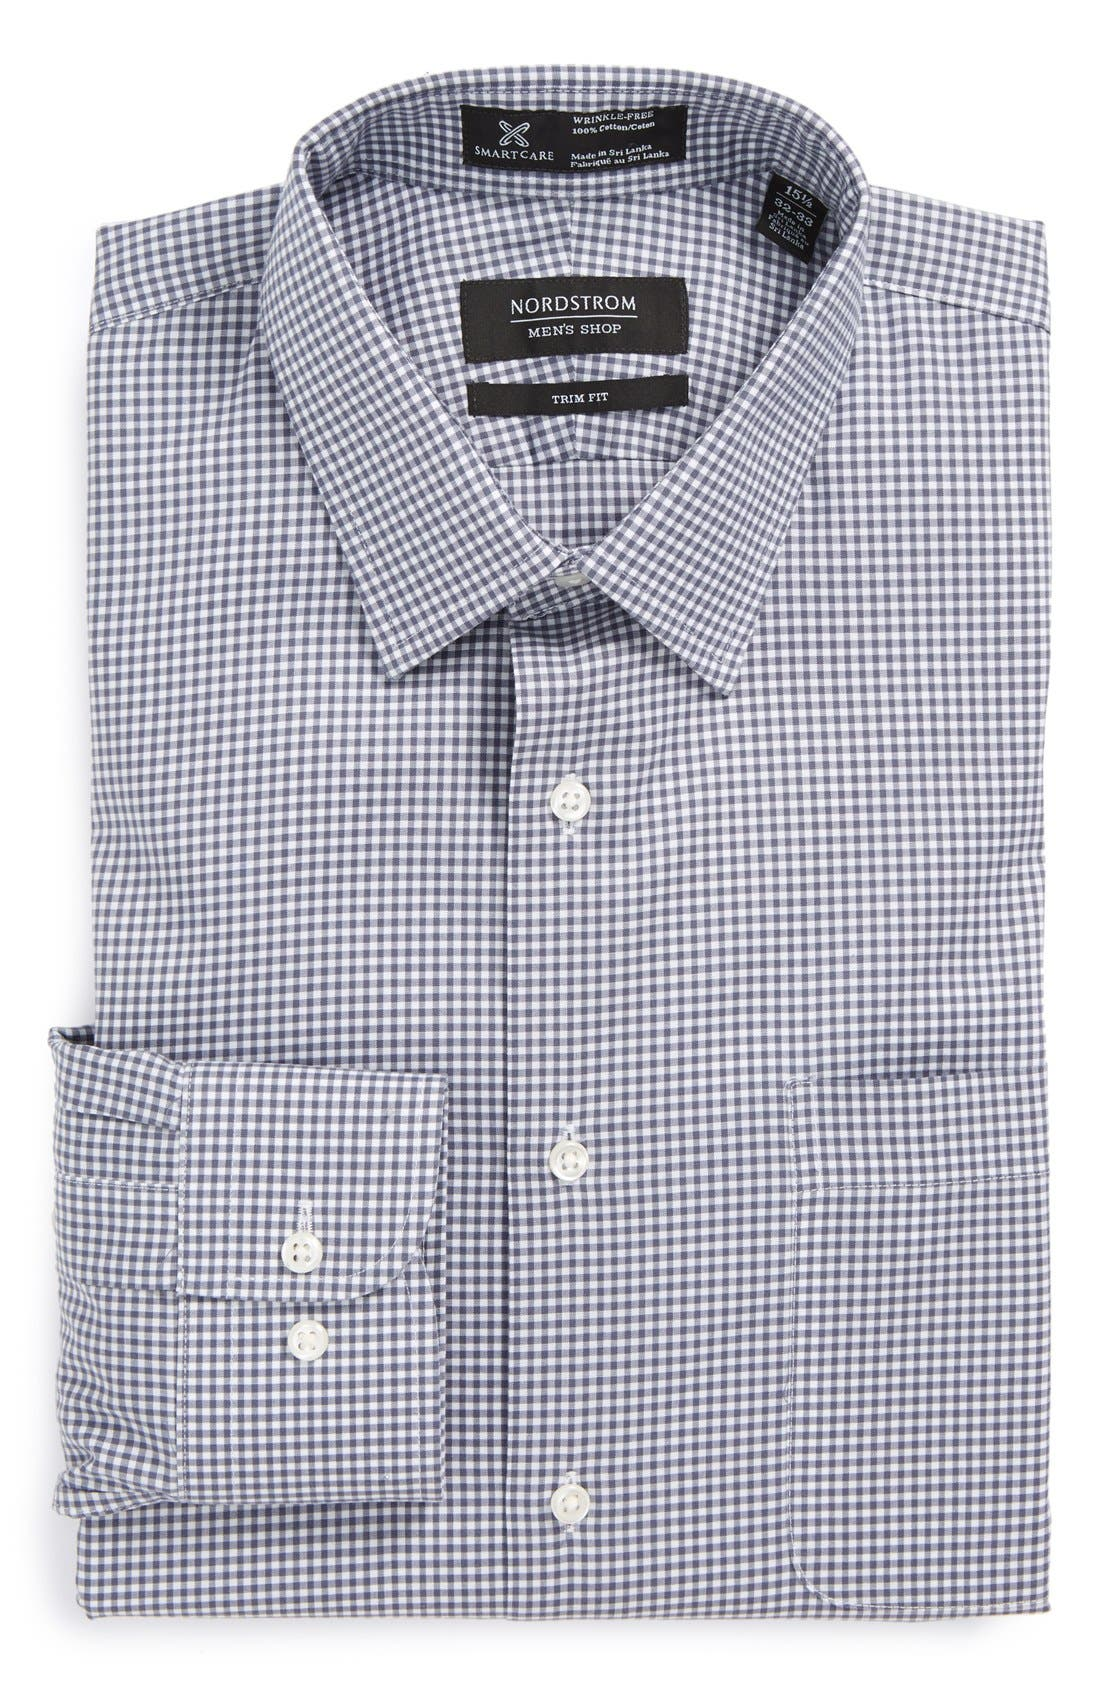 Alternate Image 1 Selected - Nordstrom Men's Shop Smartcare™ Wrinkle Free Trim Fit Gingham Dress Shirt